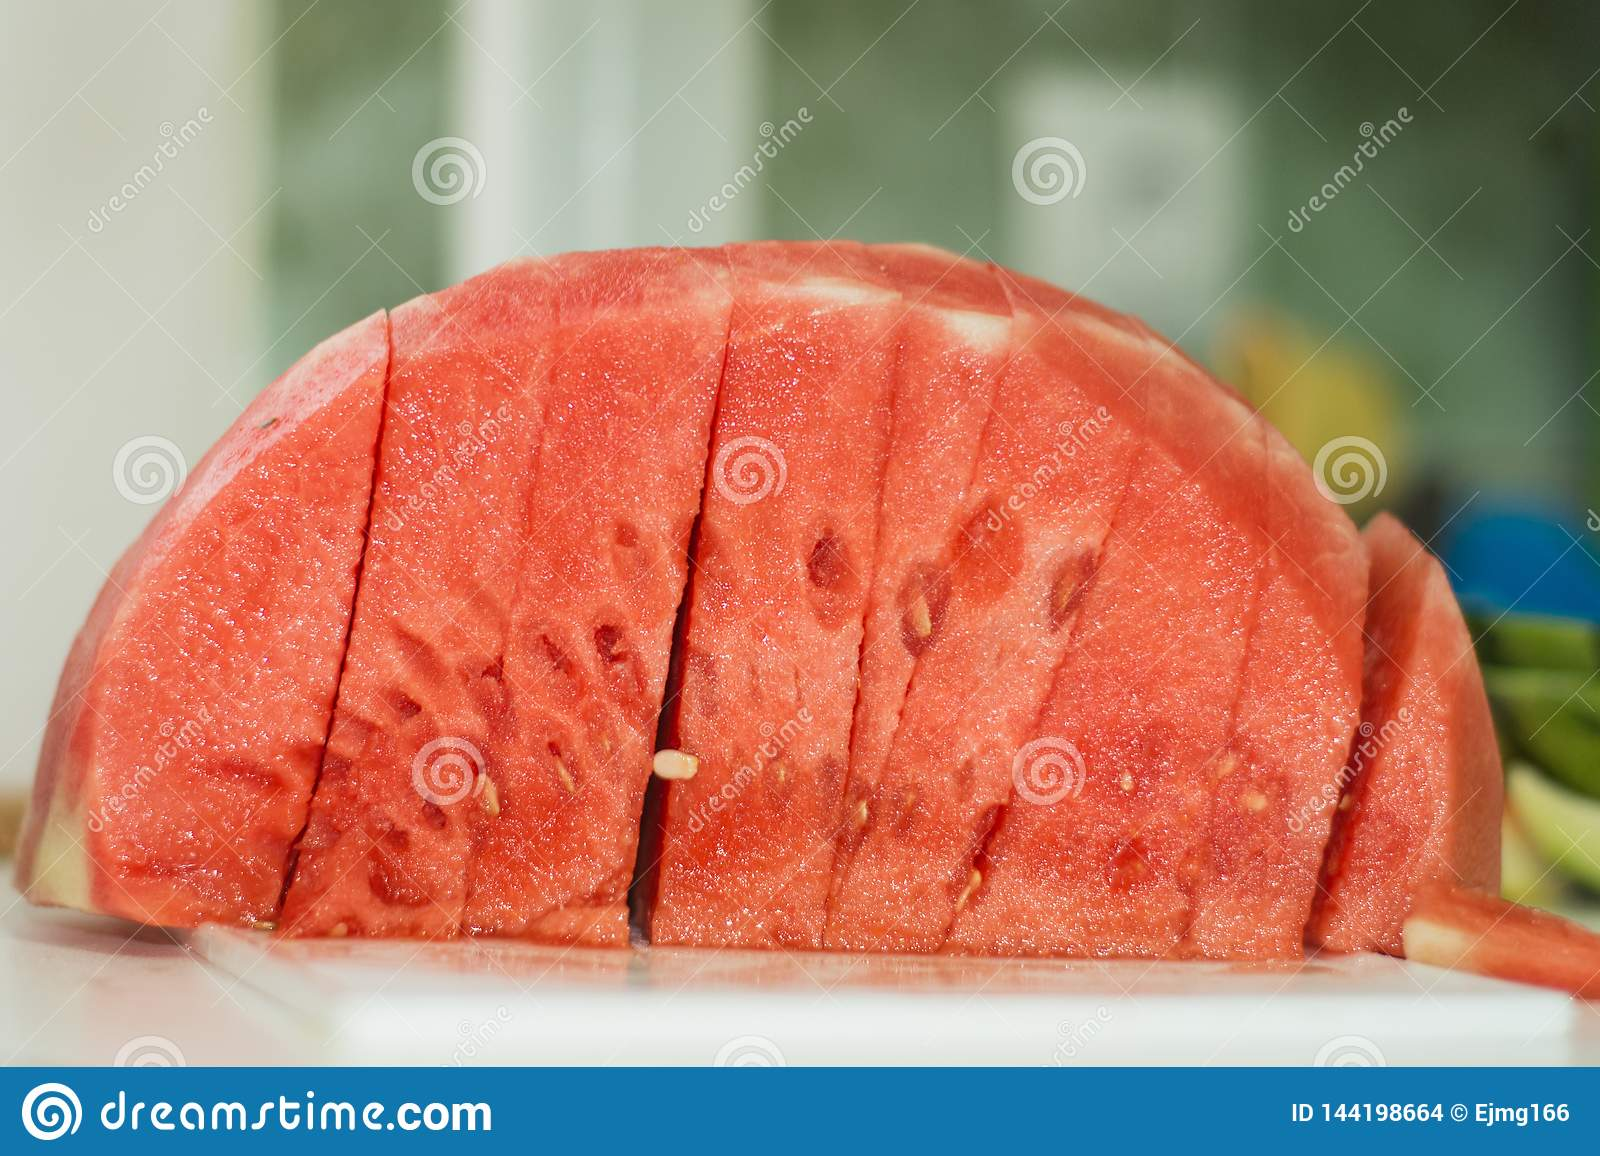 Tasty watermelon slices at home